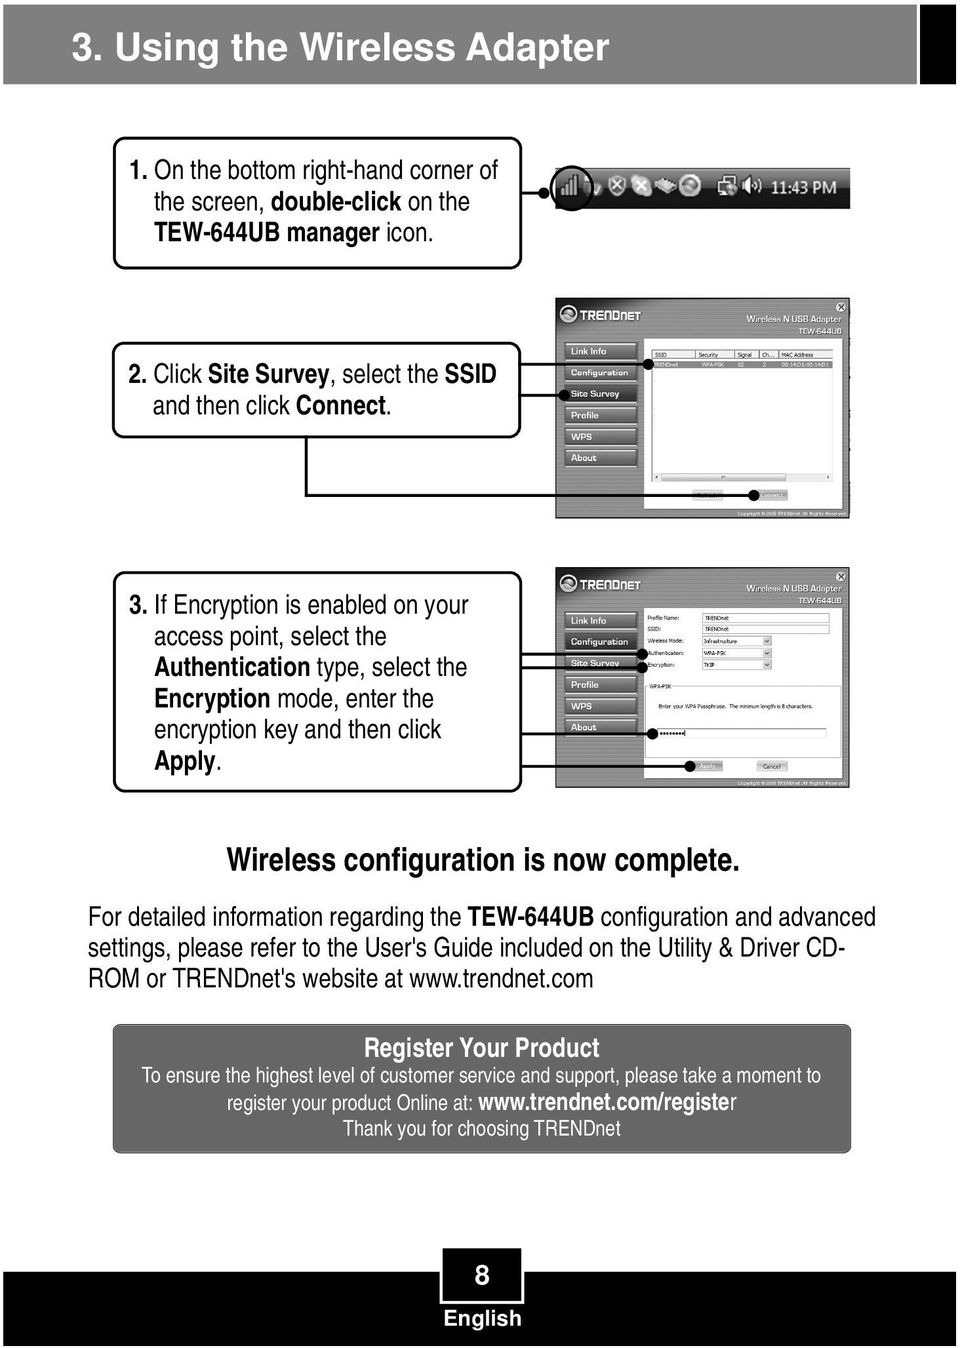 For detailed information regarding the TEW-644UB configuration and advanced settings, please refer to the User's Guide included on the Utility & Driver CD- ROM or TRENDnet's website at www.trendnet.